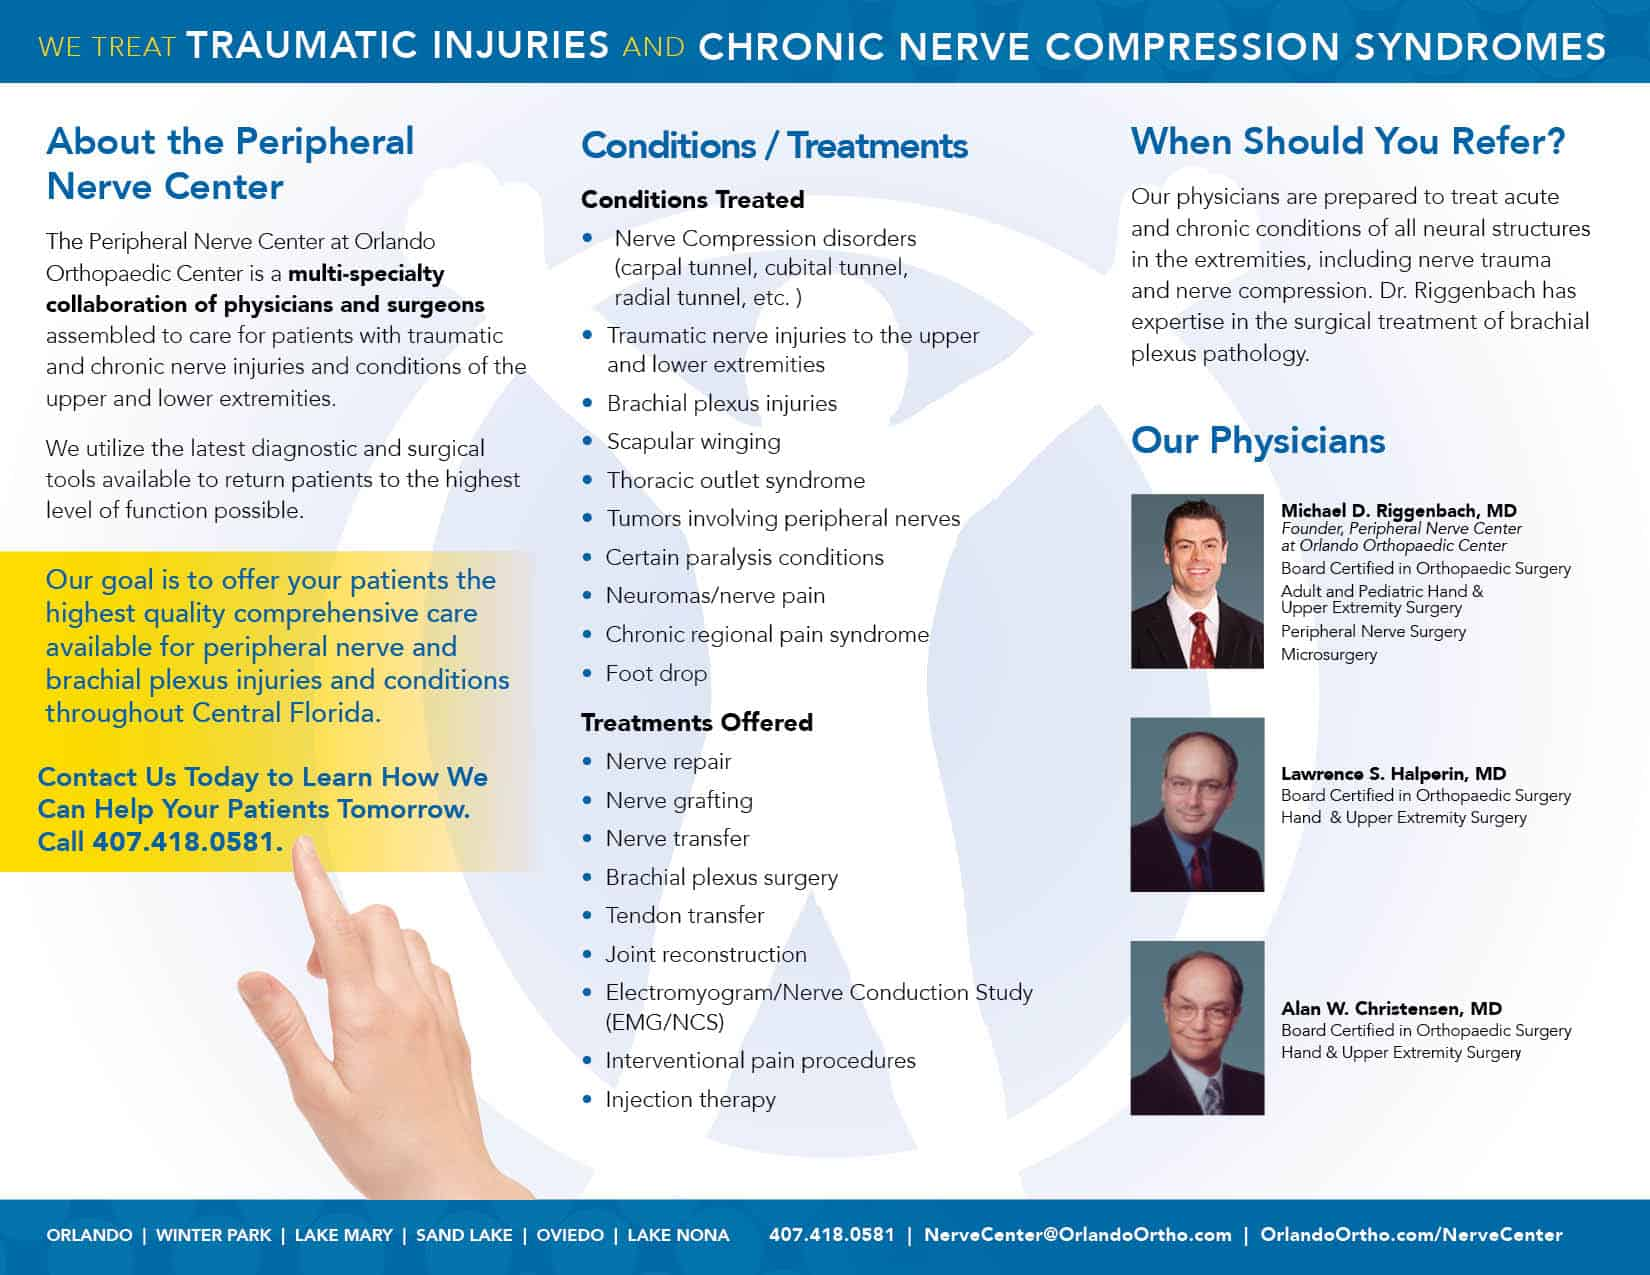 ooc-peripheral-nerve-center-brochure-12-152